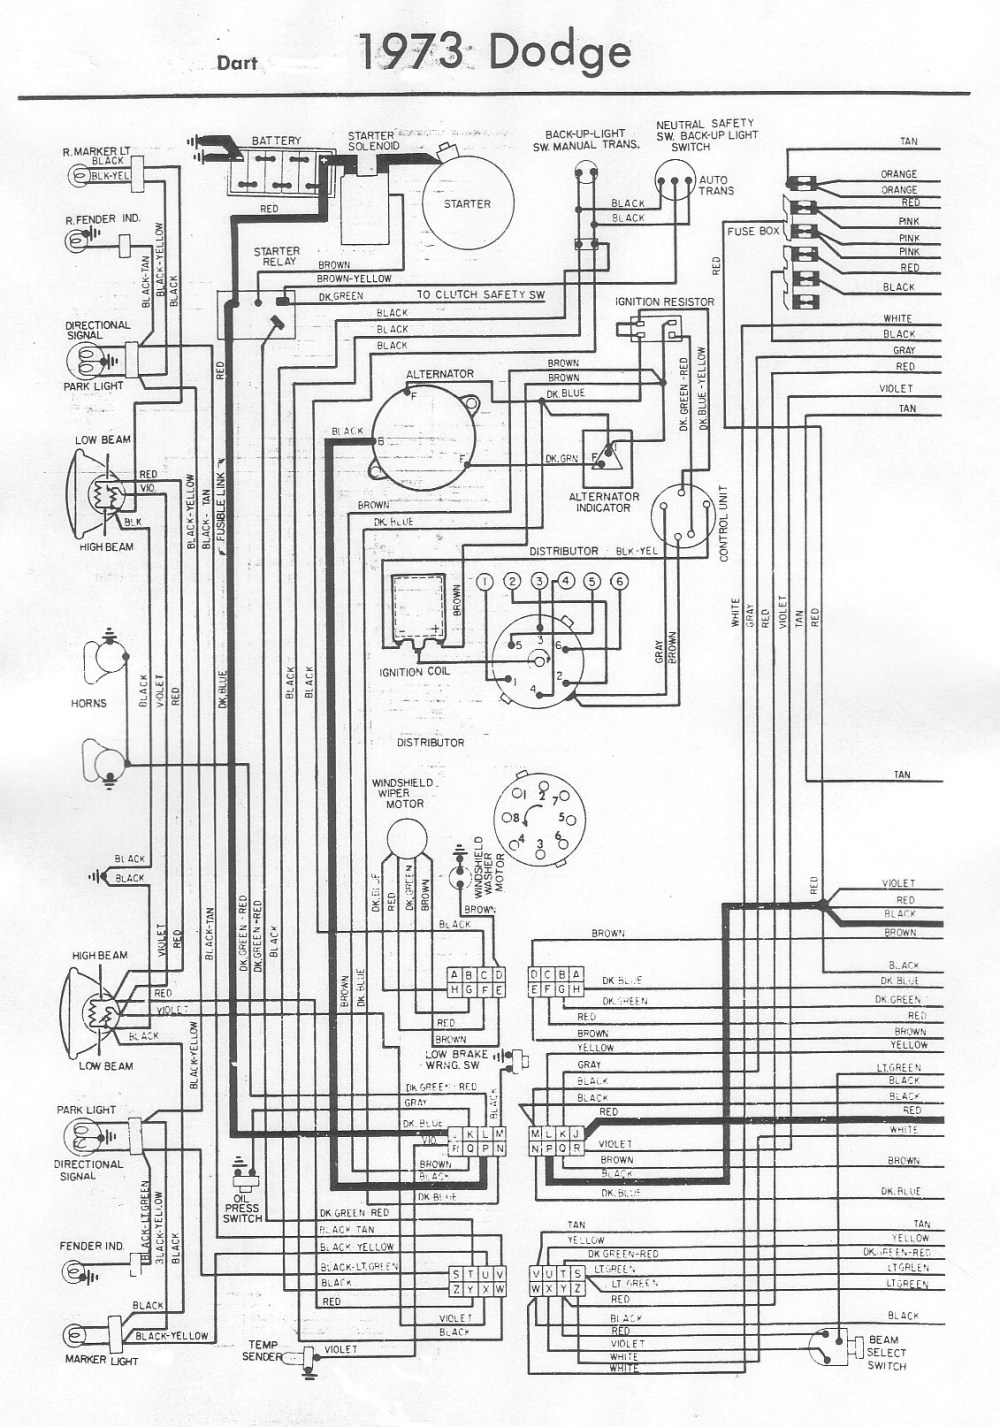 medium resolution of 73 dodge dart wiring diagrams wiring diagrams schema rh 53 verena hoegerl de 2014 dodge dart ac wiring diagram 2013 dodge dart wiring diagram wipers